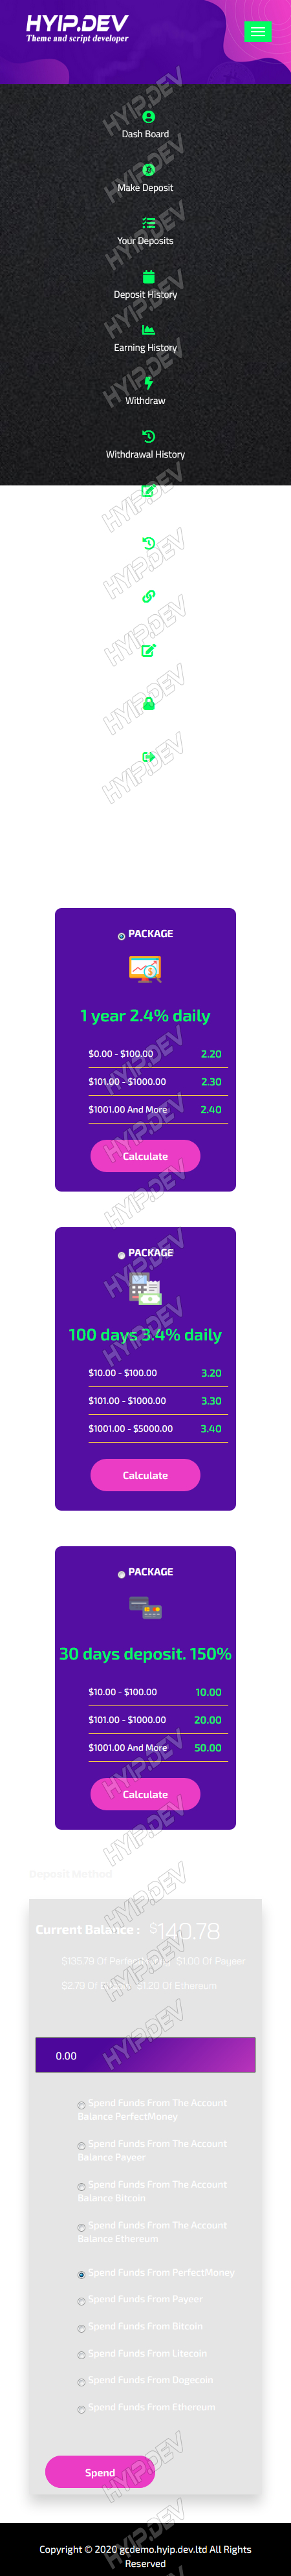 goldcoders hyip template no. 148, mobile page screenshot